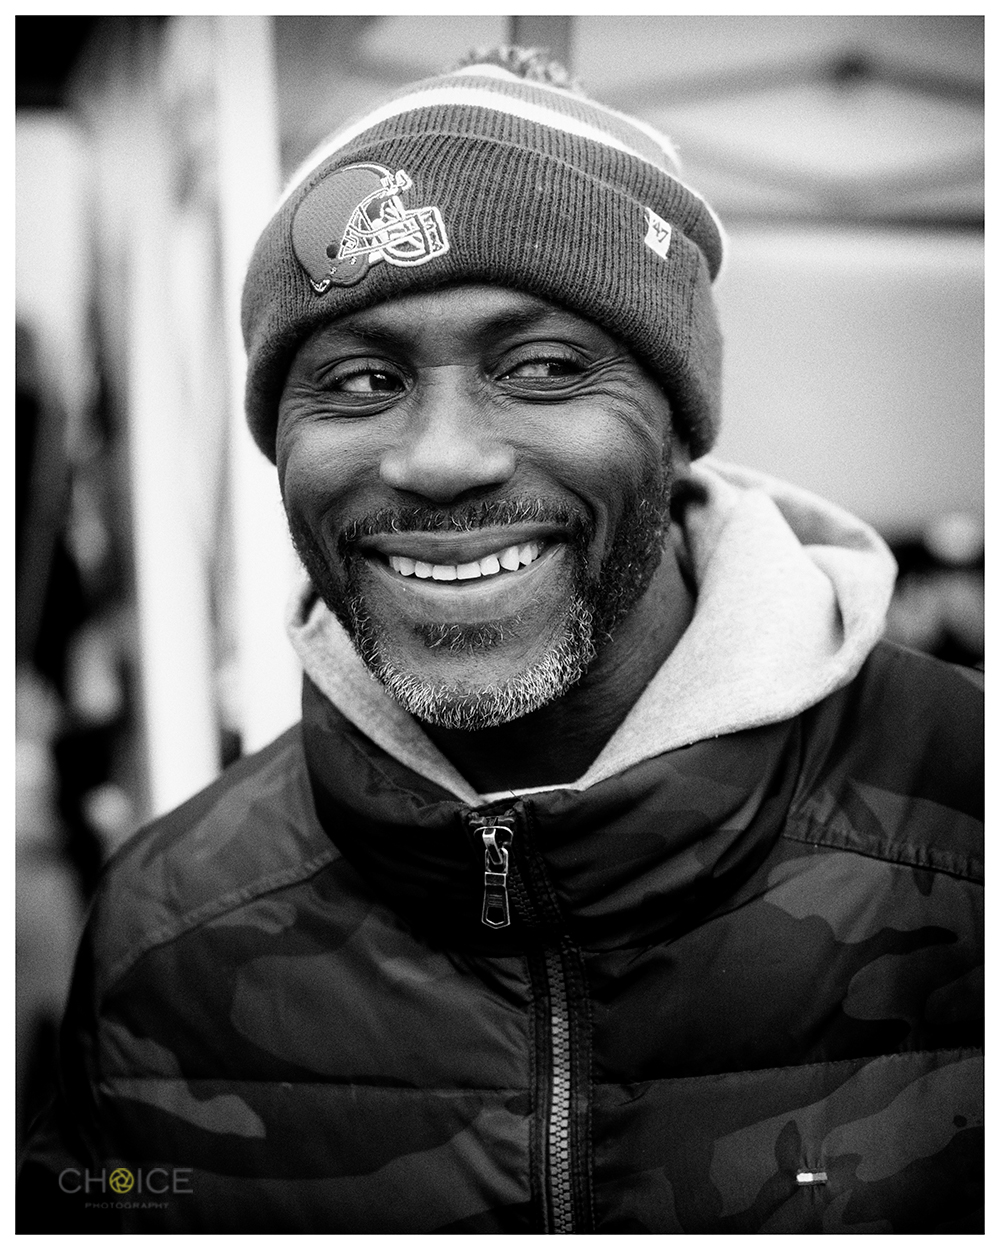 James is an Immigrant from Ghana living and working in United States. (Rodney Choice/Choice Photography/www.choicephotography.com)